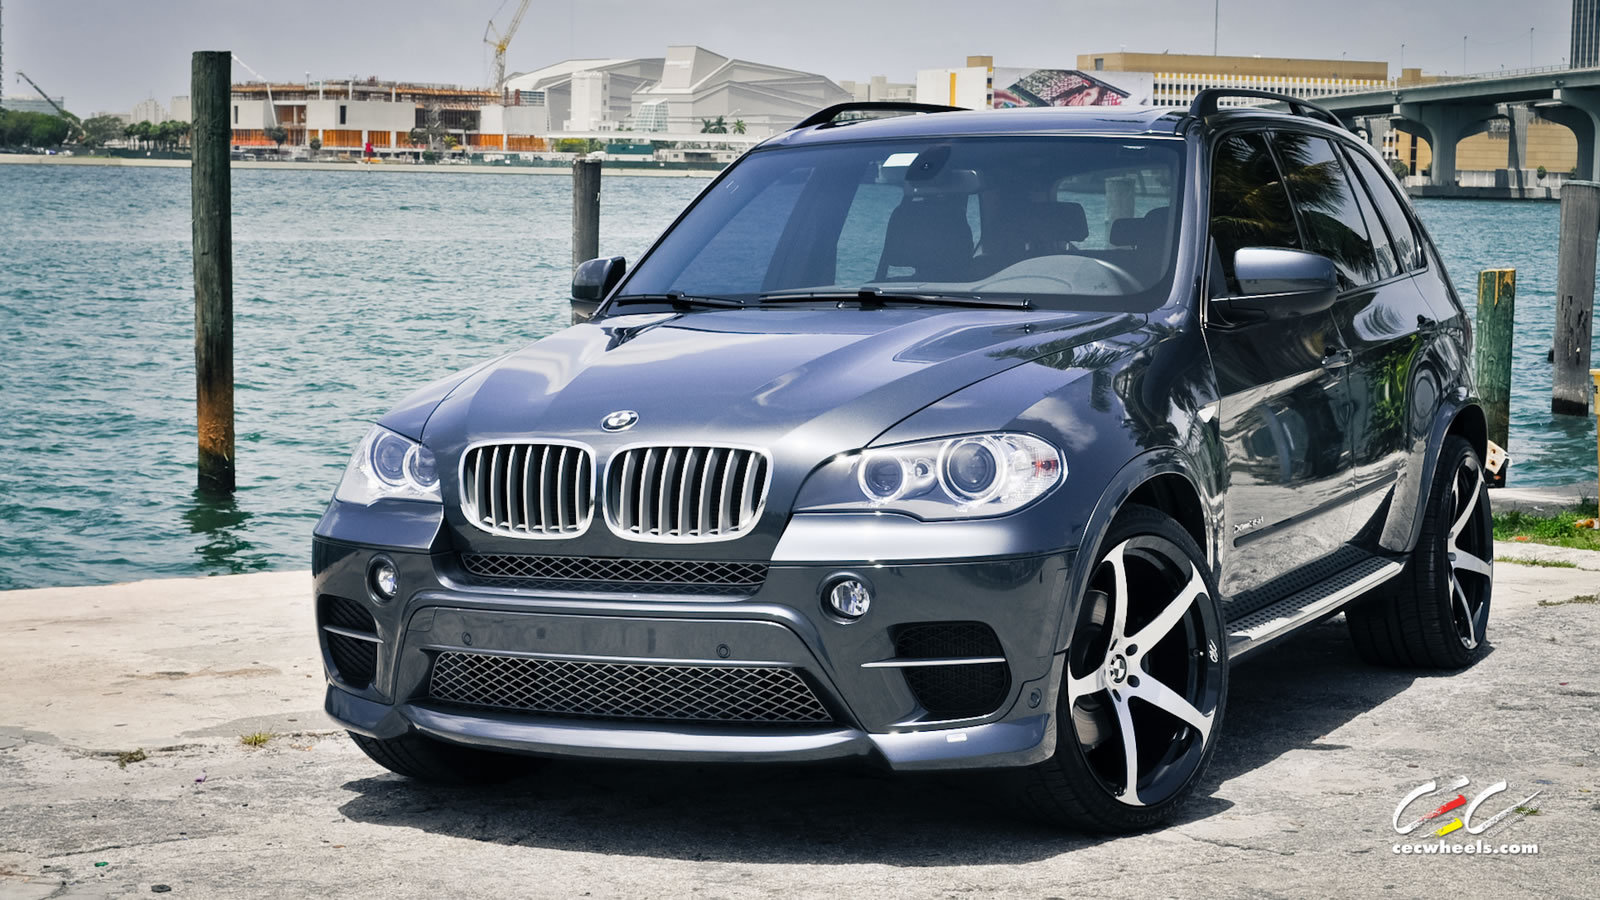 bmw x5 tuning wallpapers images photos pictures backgrounds